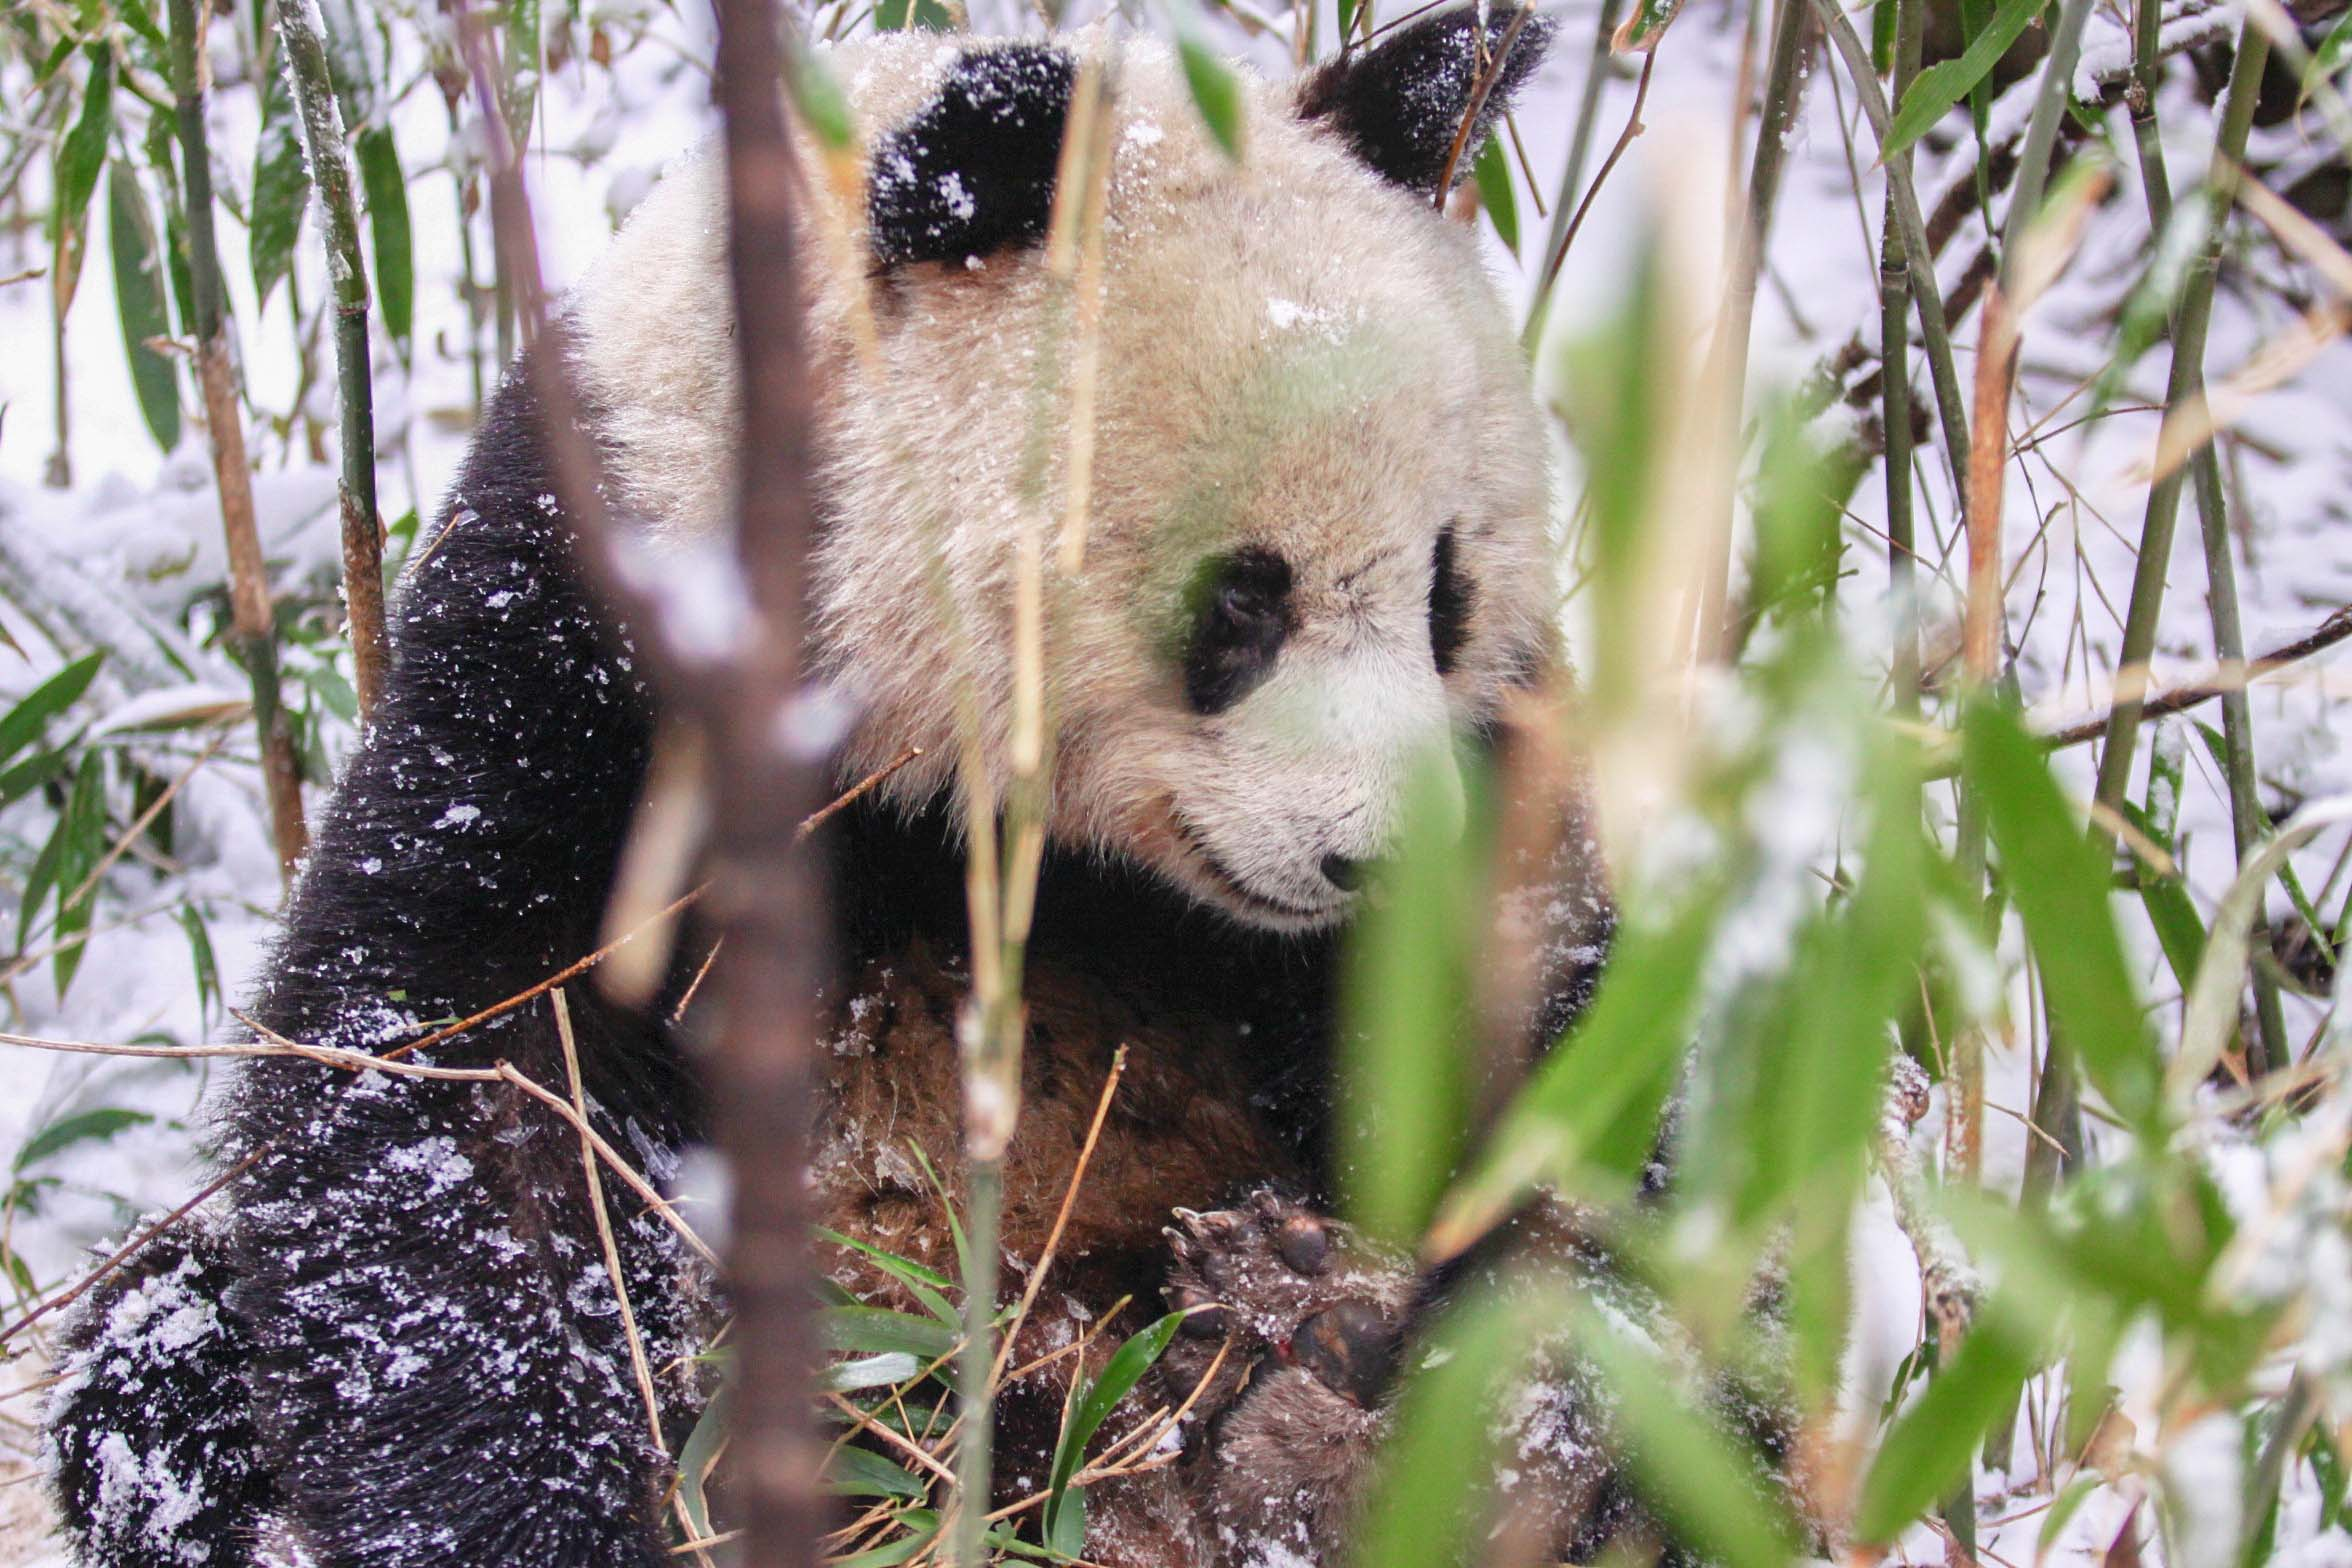 Increased livestock grazing in protected forests is shrinking the habitats of wild giant pandas and driving them away.